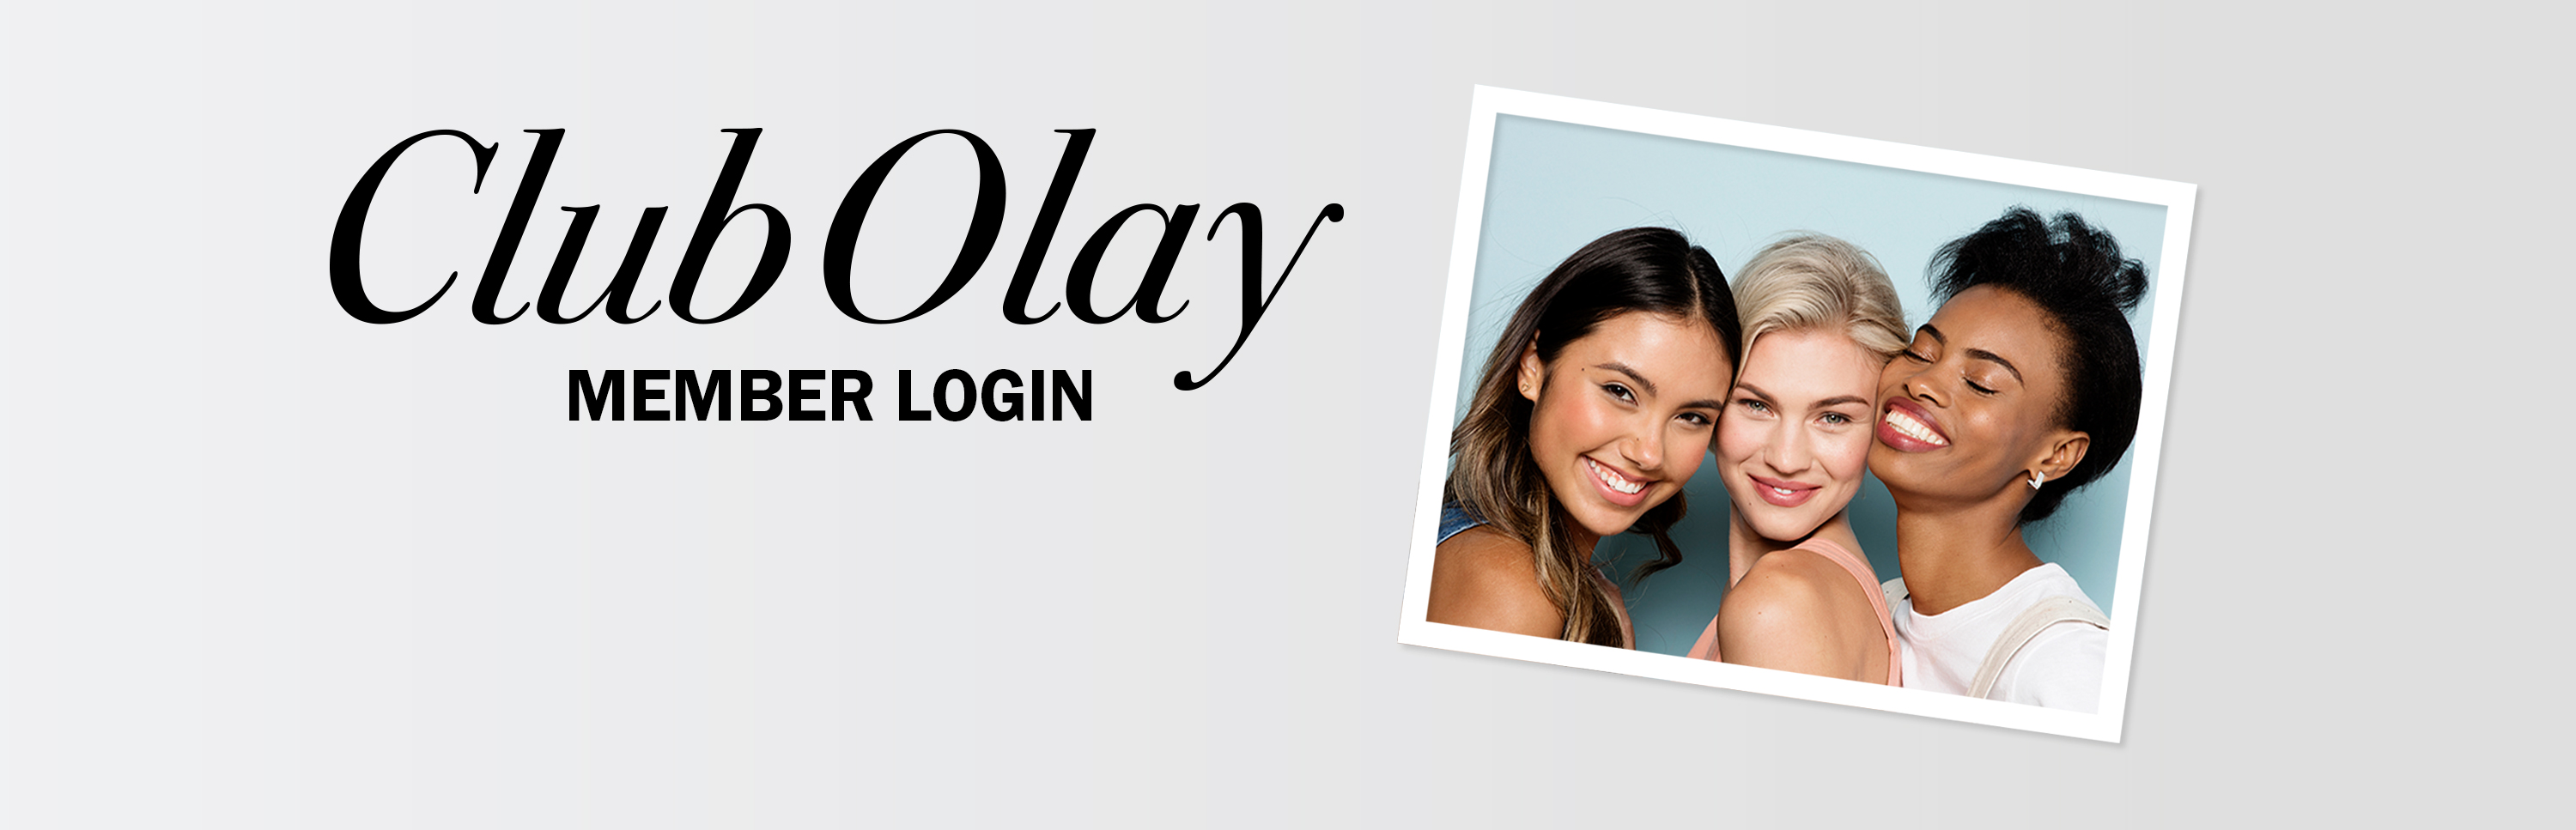 club olay member login